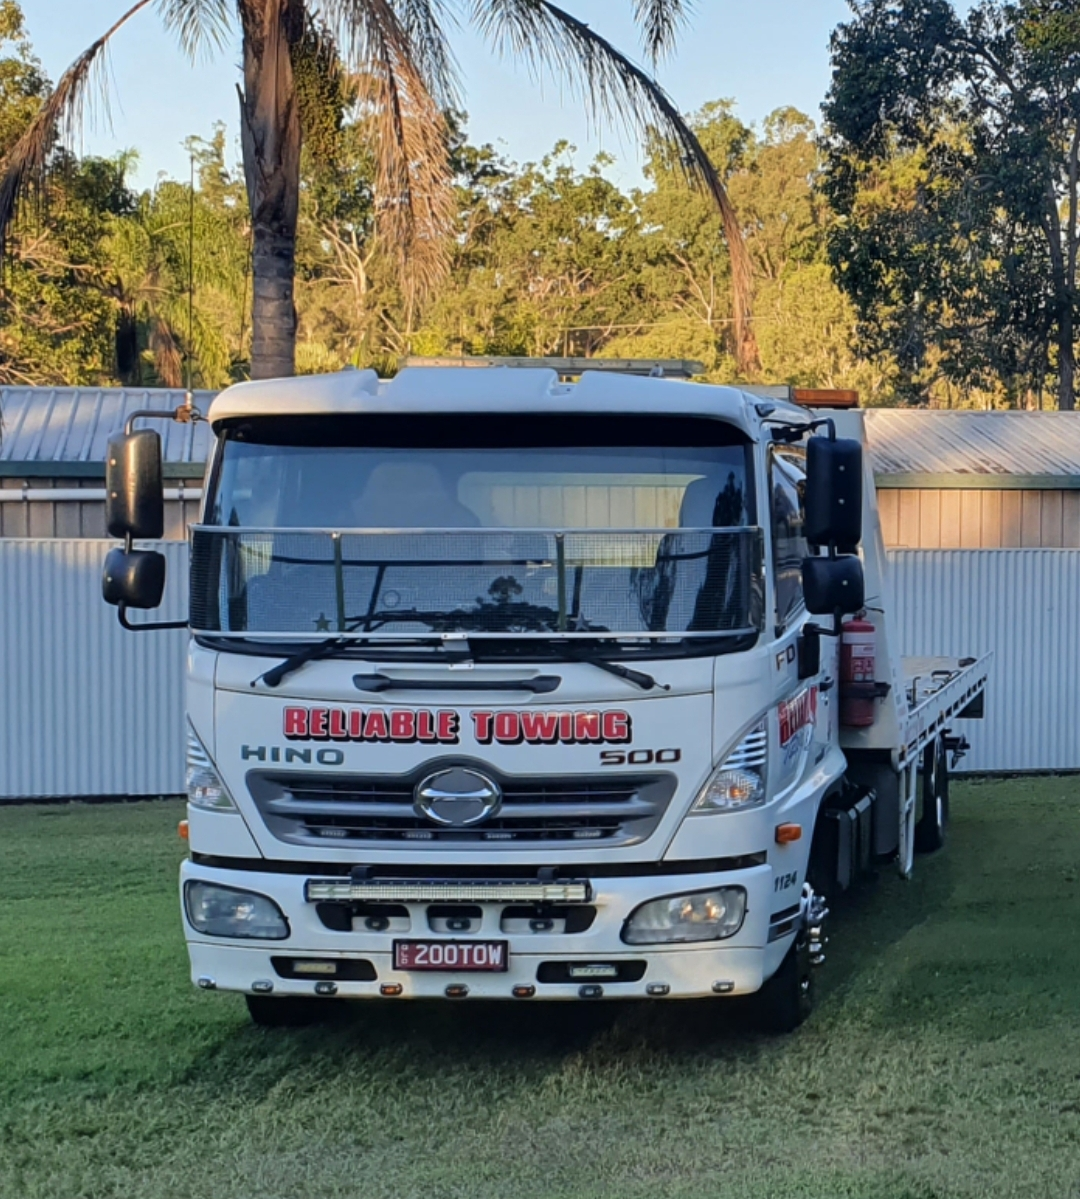 Reliable Towing - Tow Truck service